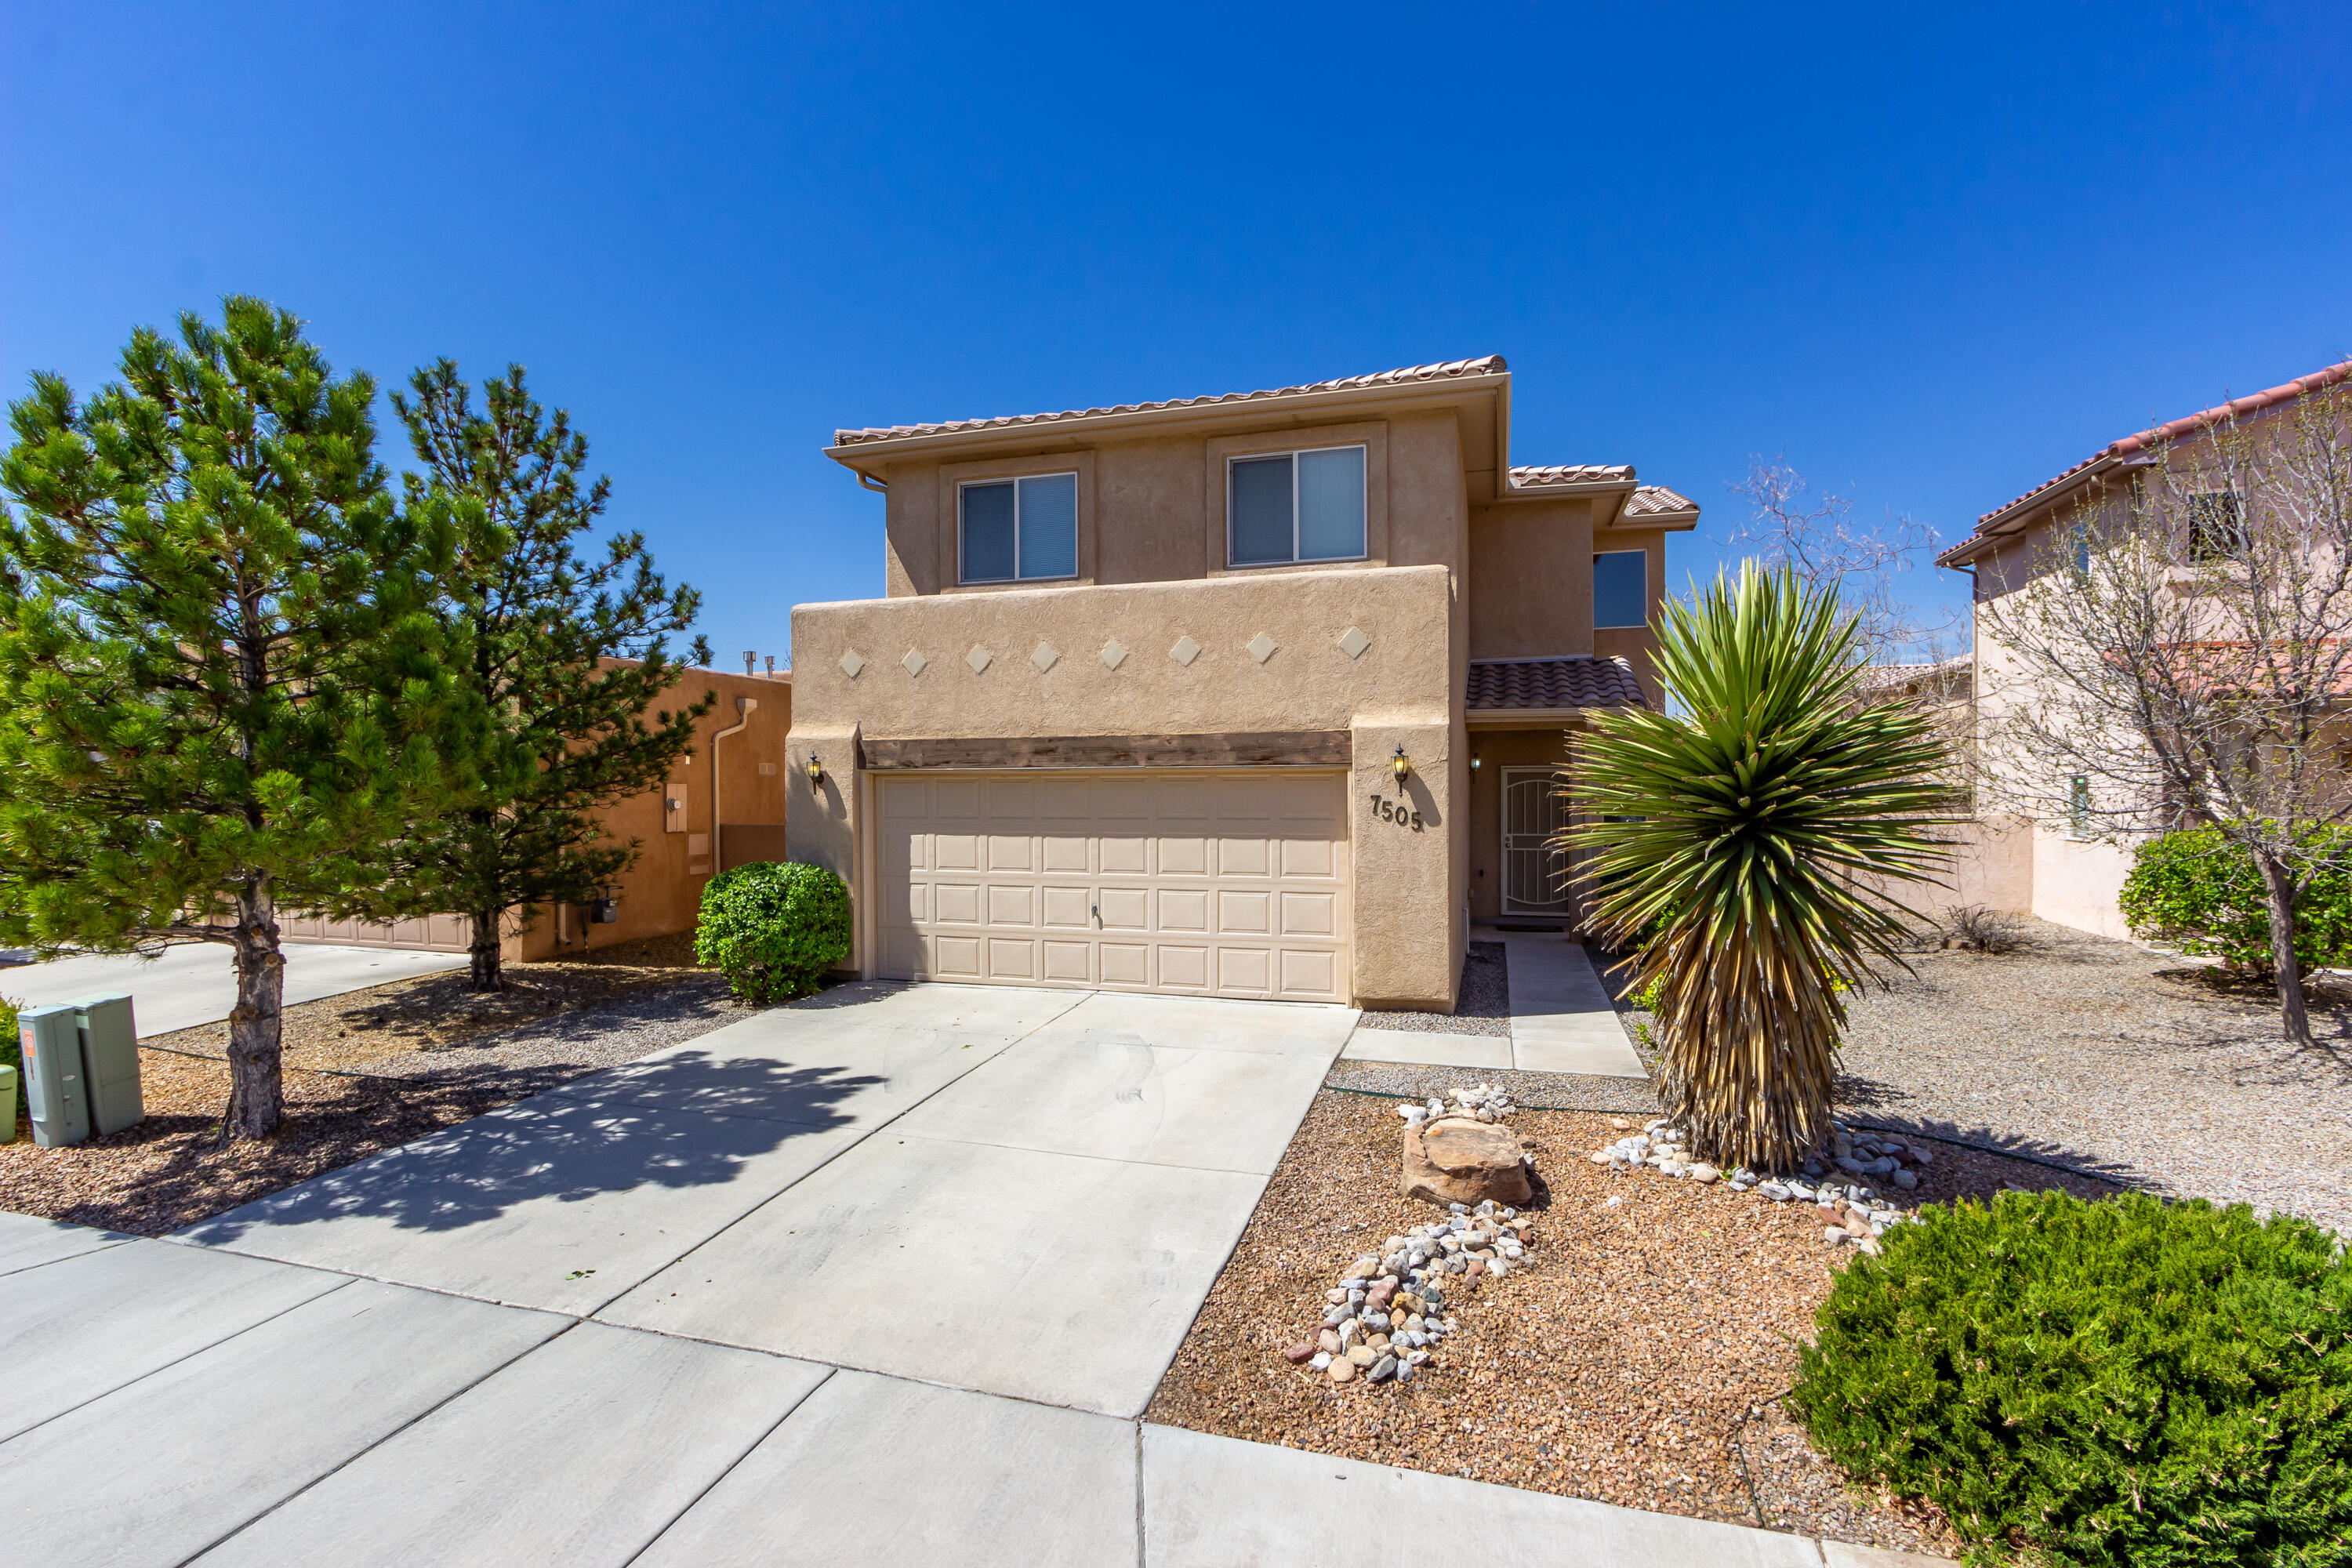 Welcome home to this lovely 4 bed 3 bath home in Vista Del Norte! Open floor plan and lots of room. Great backyard perfect for summer BBQ's. Walking and running trails and easy access to Paseo Del Norte and I25.